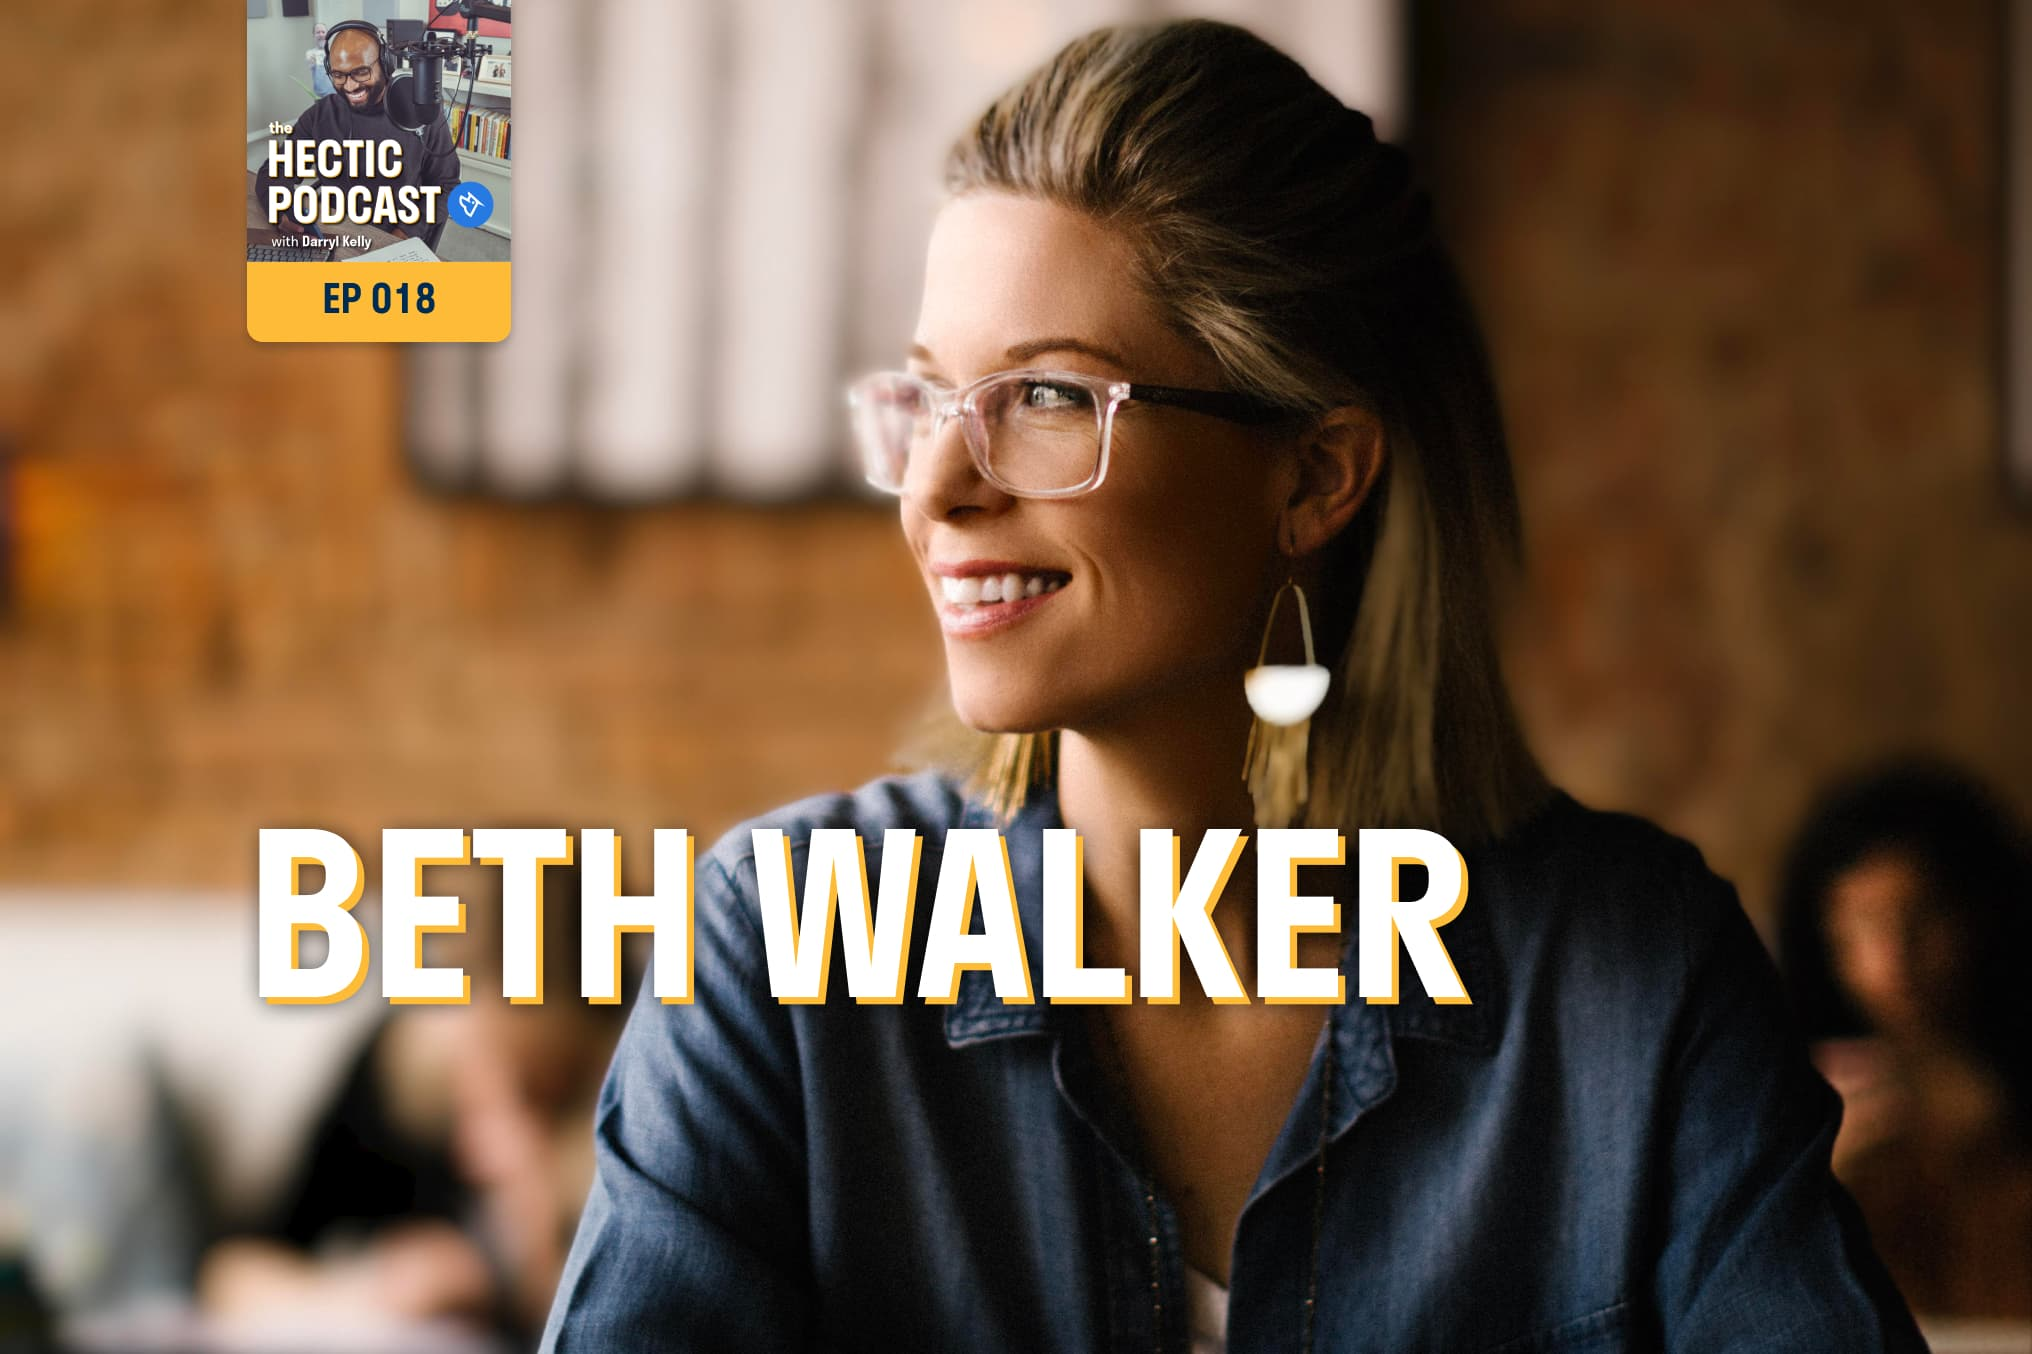 The Hectic Podcast with Beth Walker: Build community